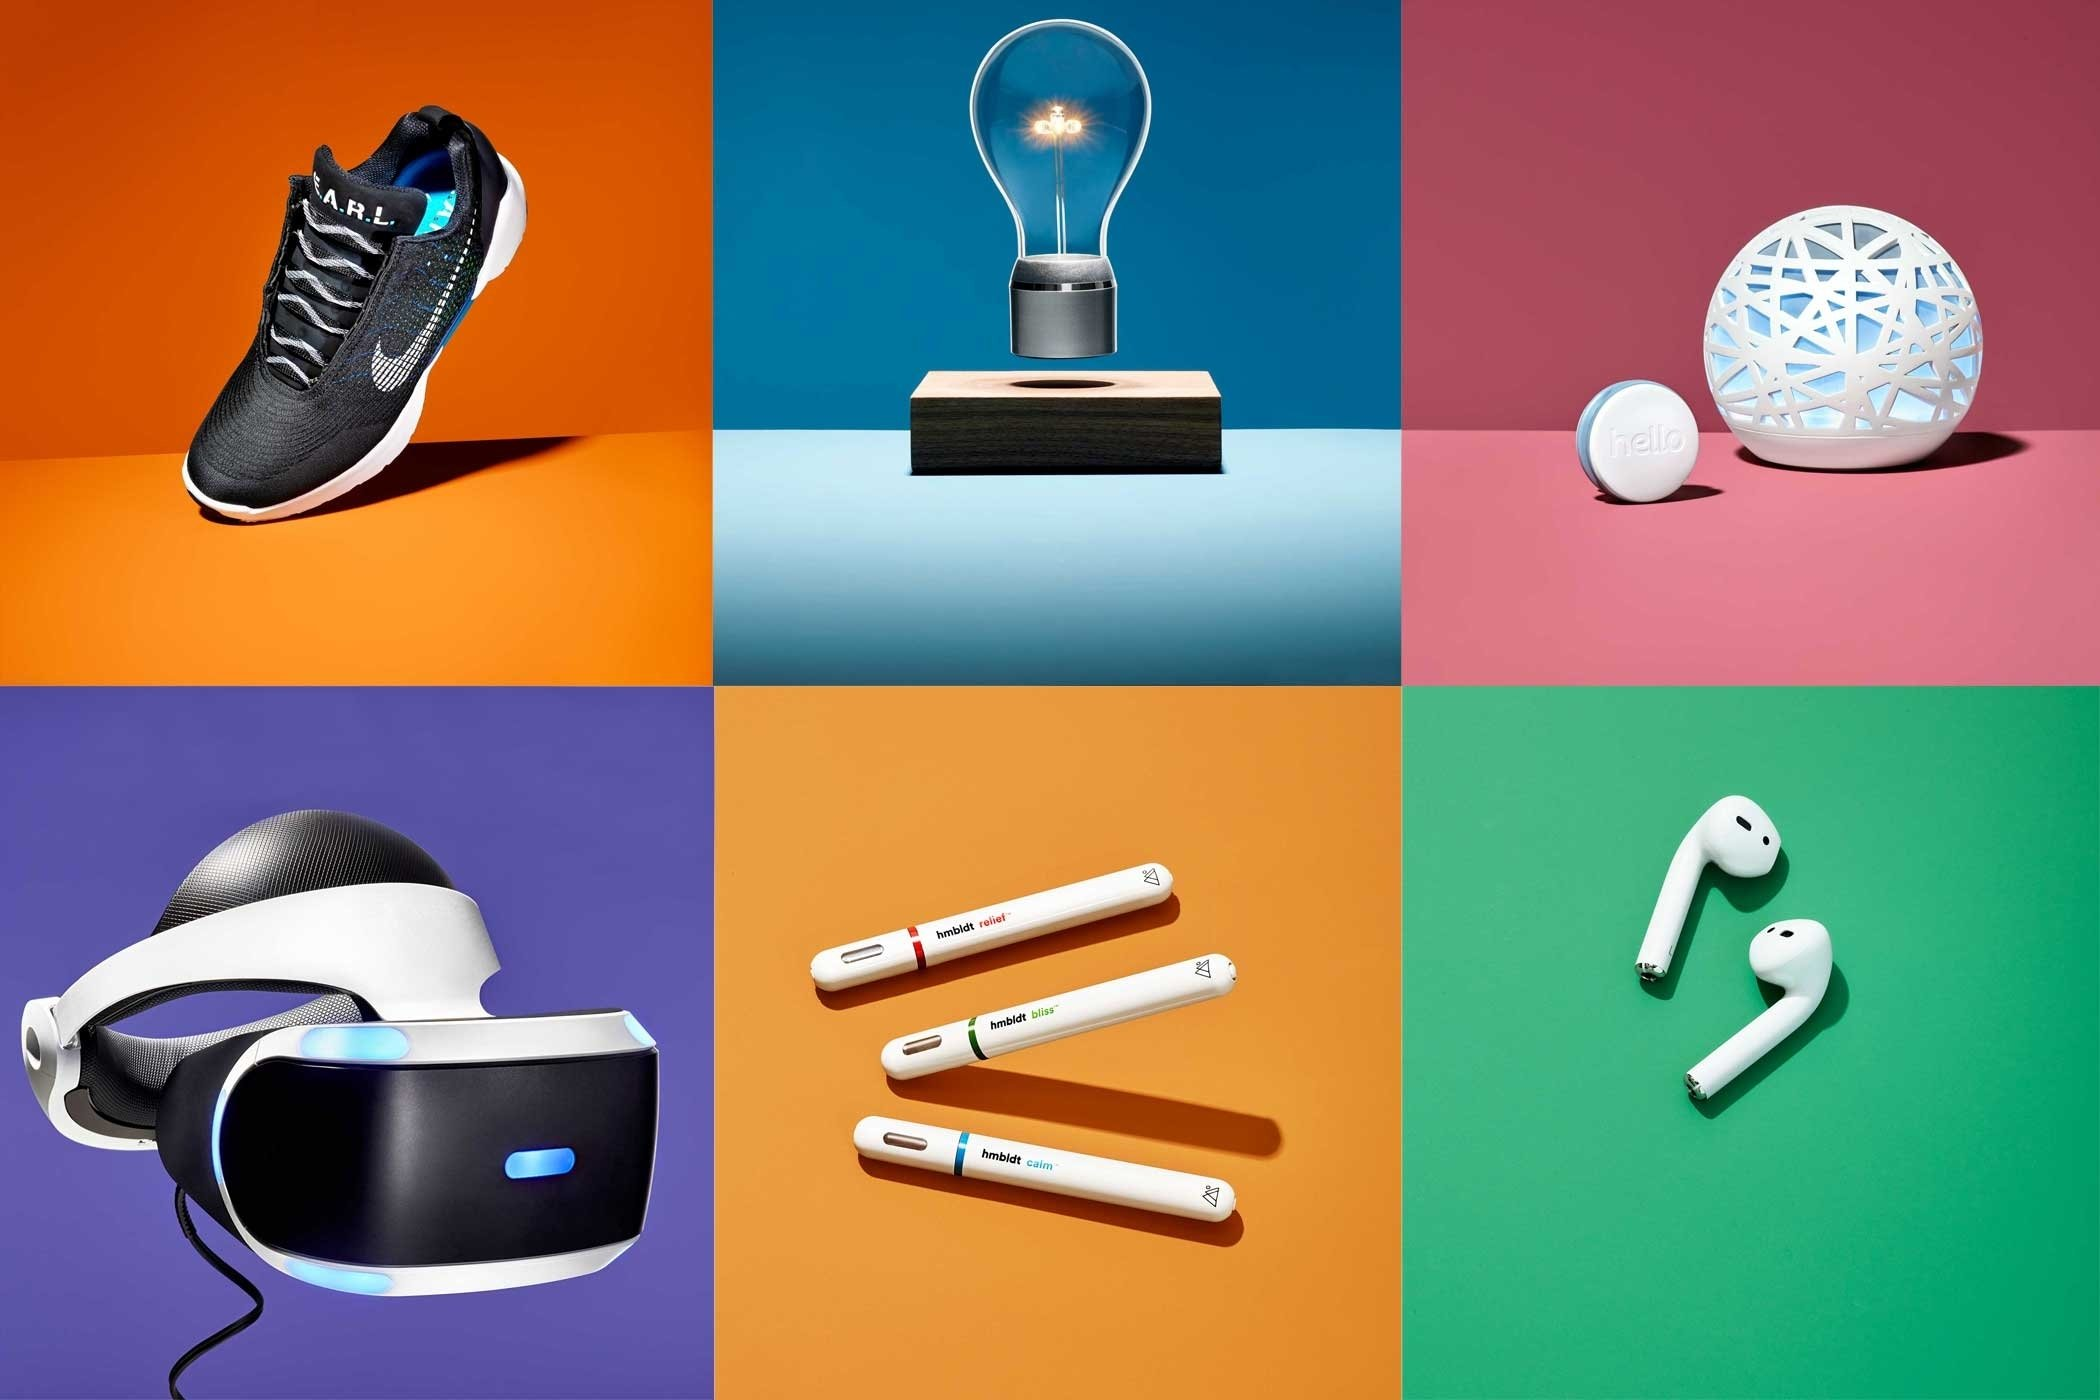 10 Attractive I Have An Invention Idea inventions 2016 the best of this year time 2020